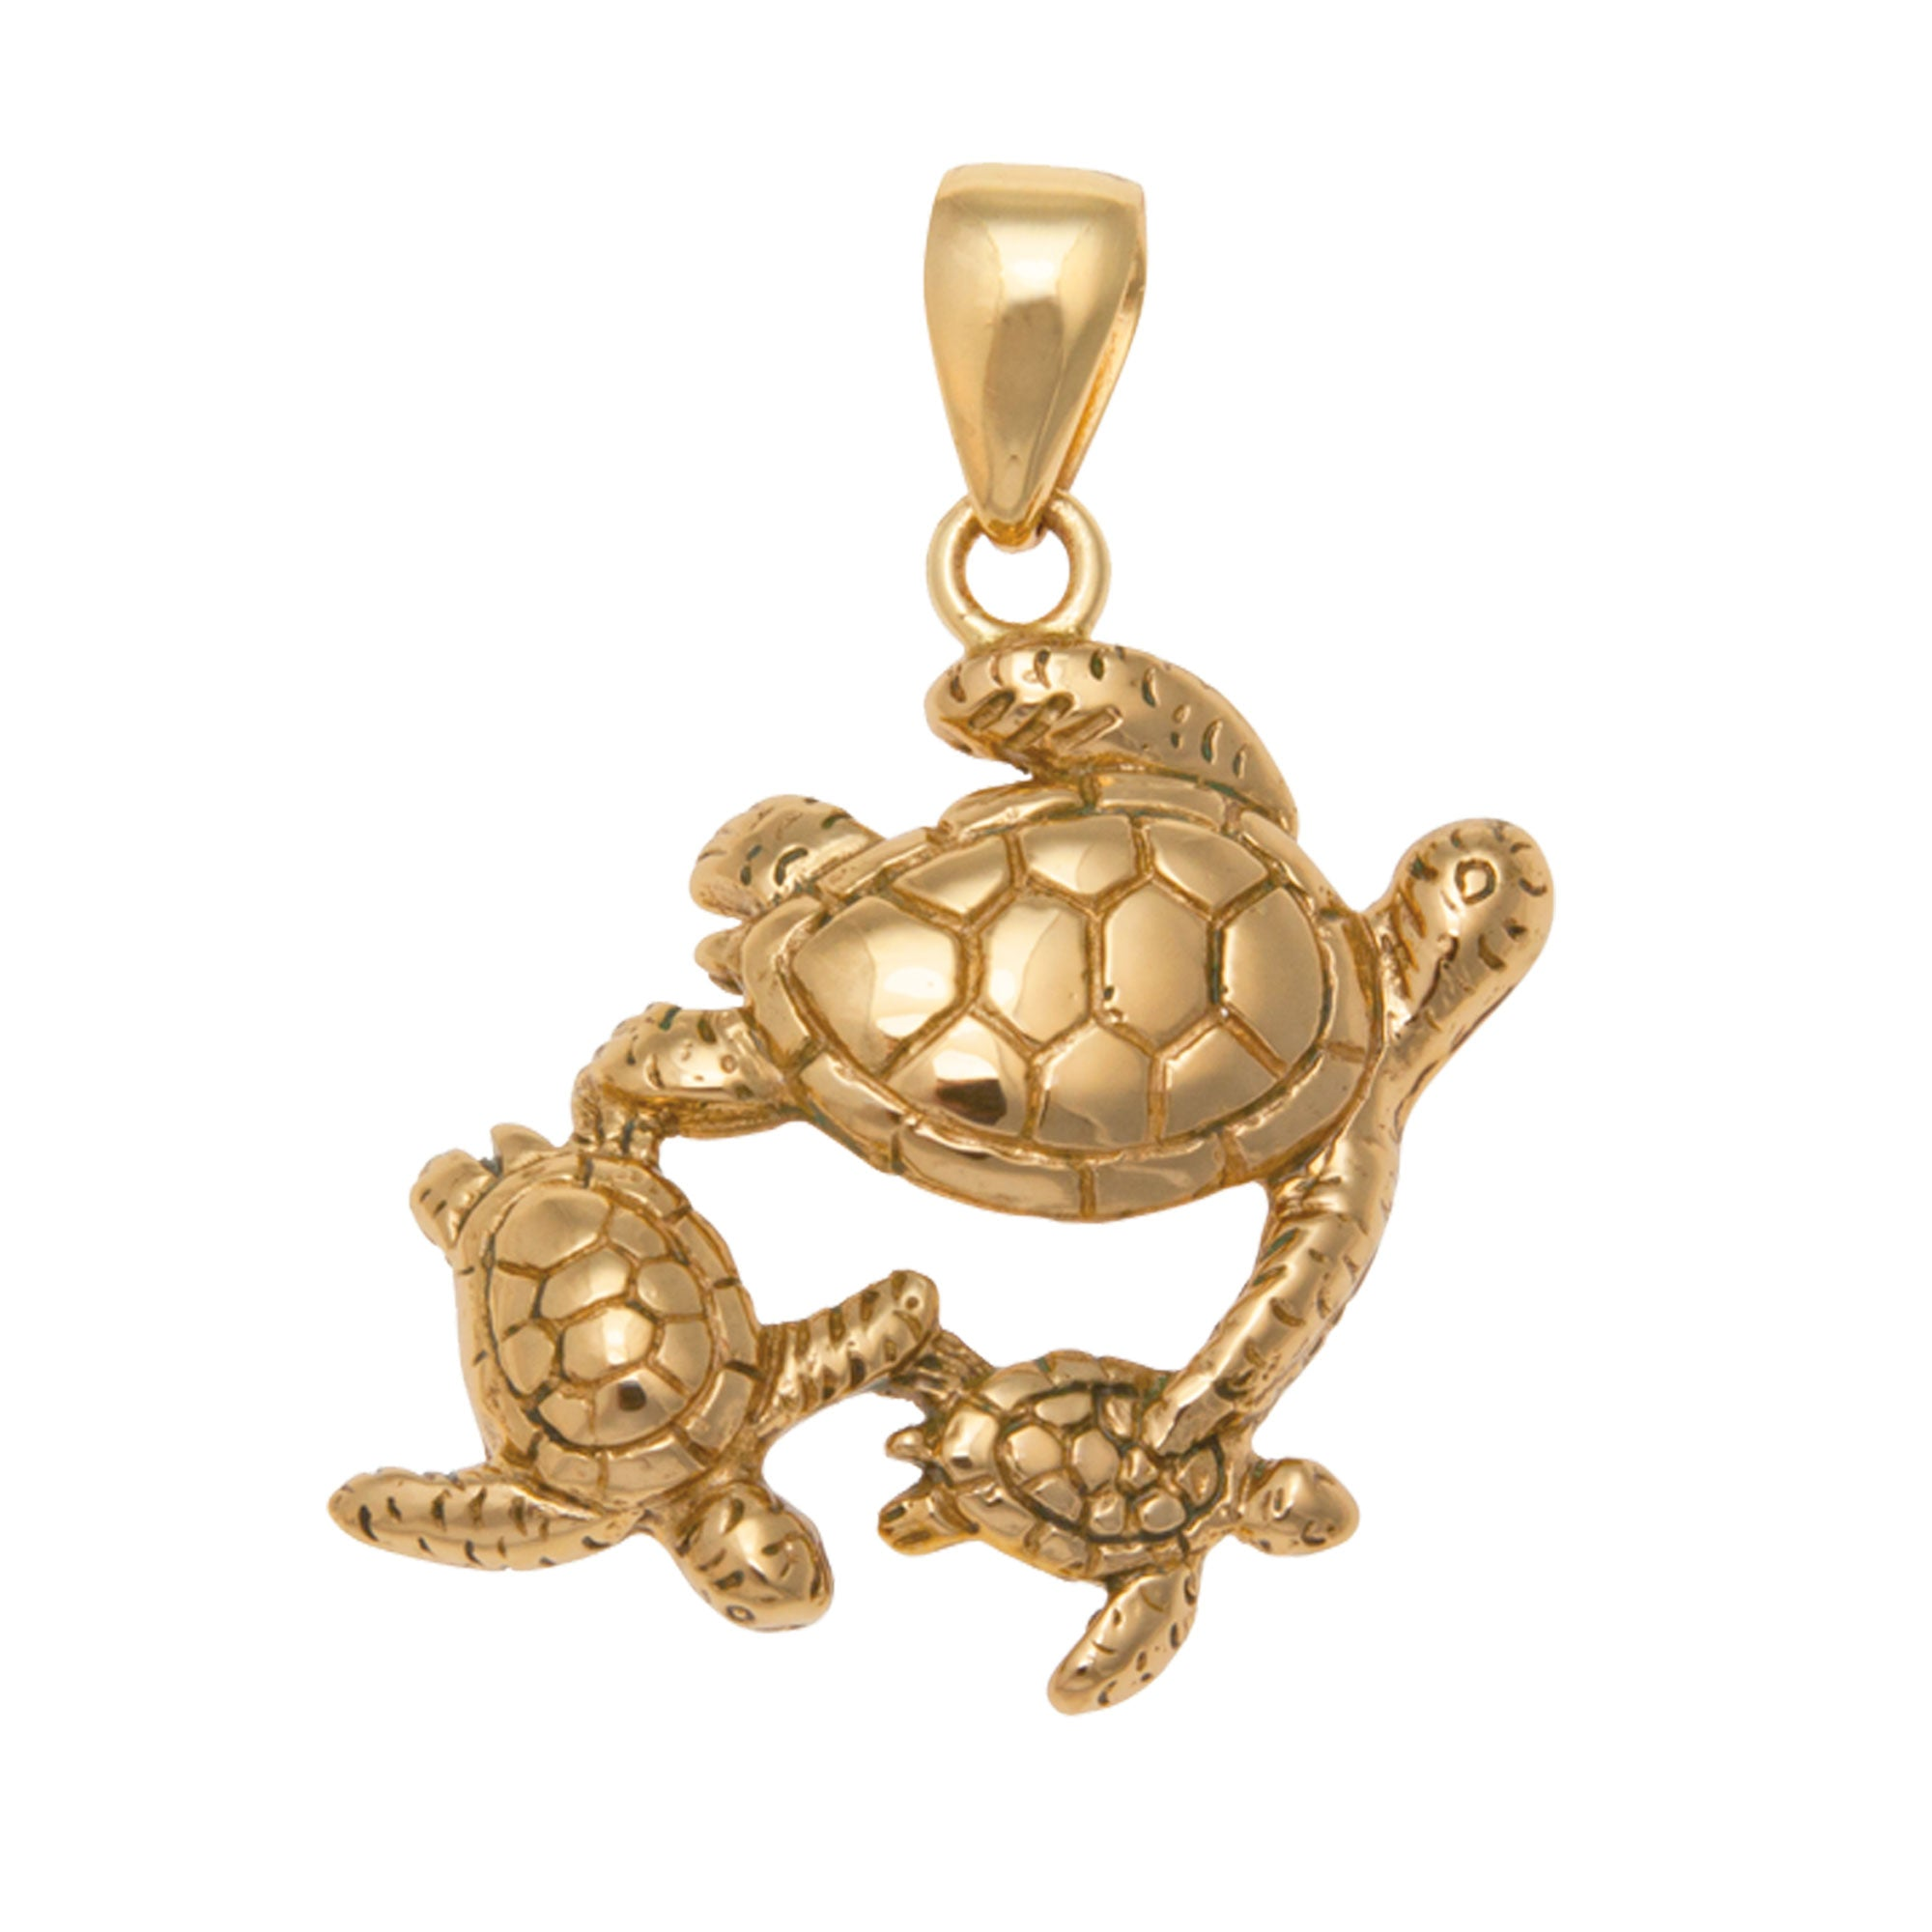 Alchemia Sea Turtle Family Pendant | Charles Albert Jewelry